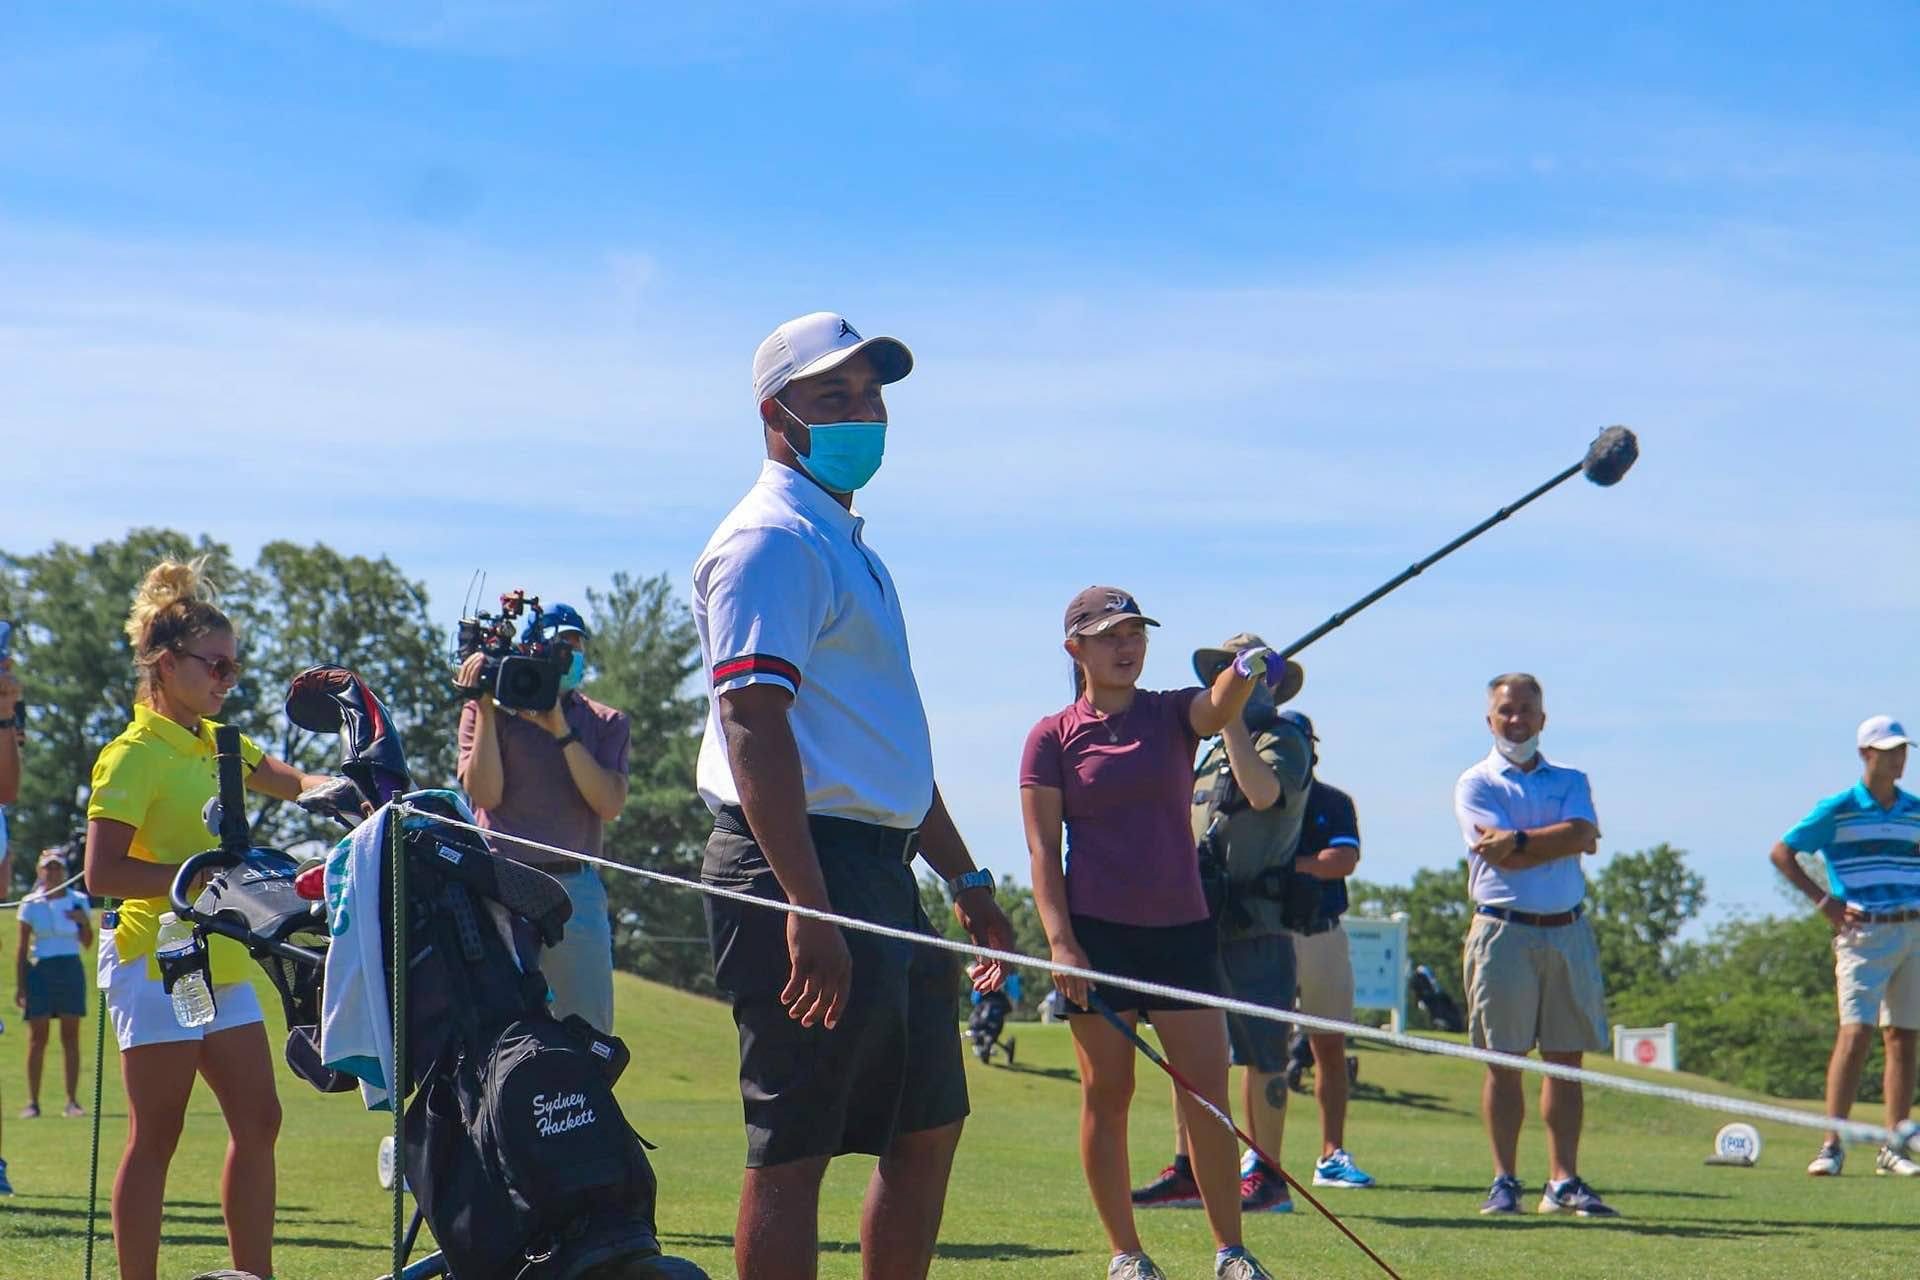 Down to the wire Harold Varner III mentoring juniors